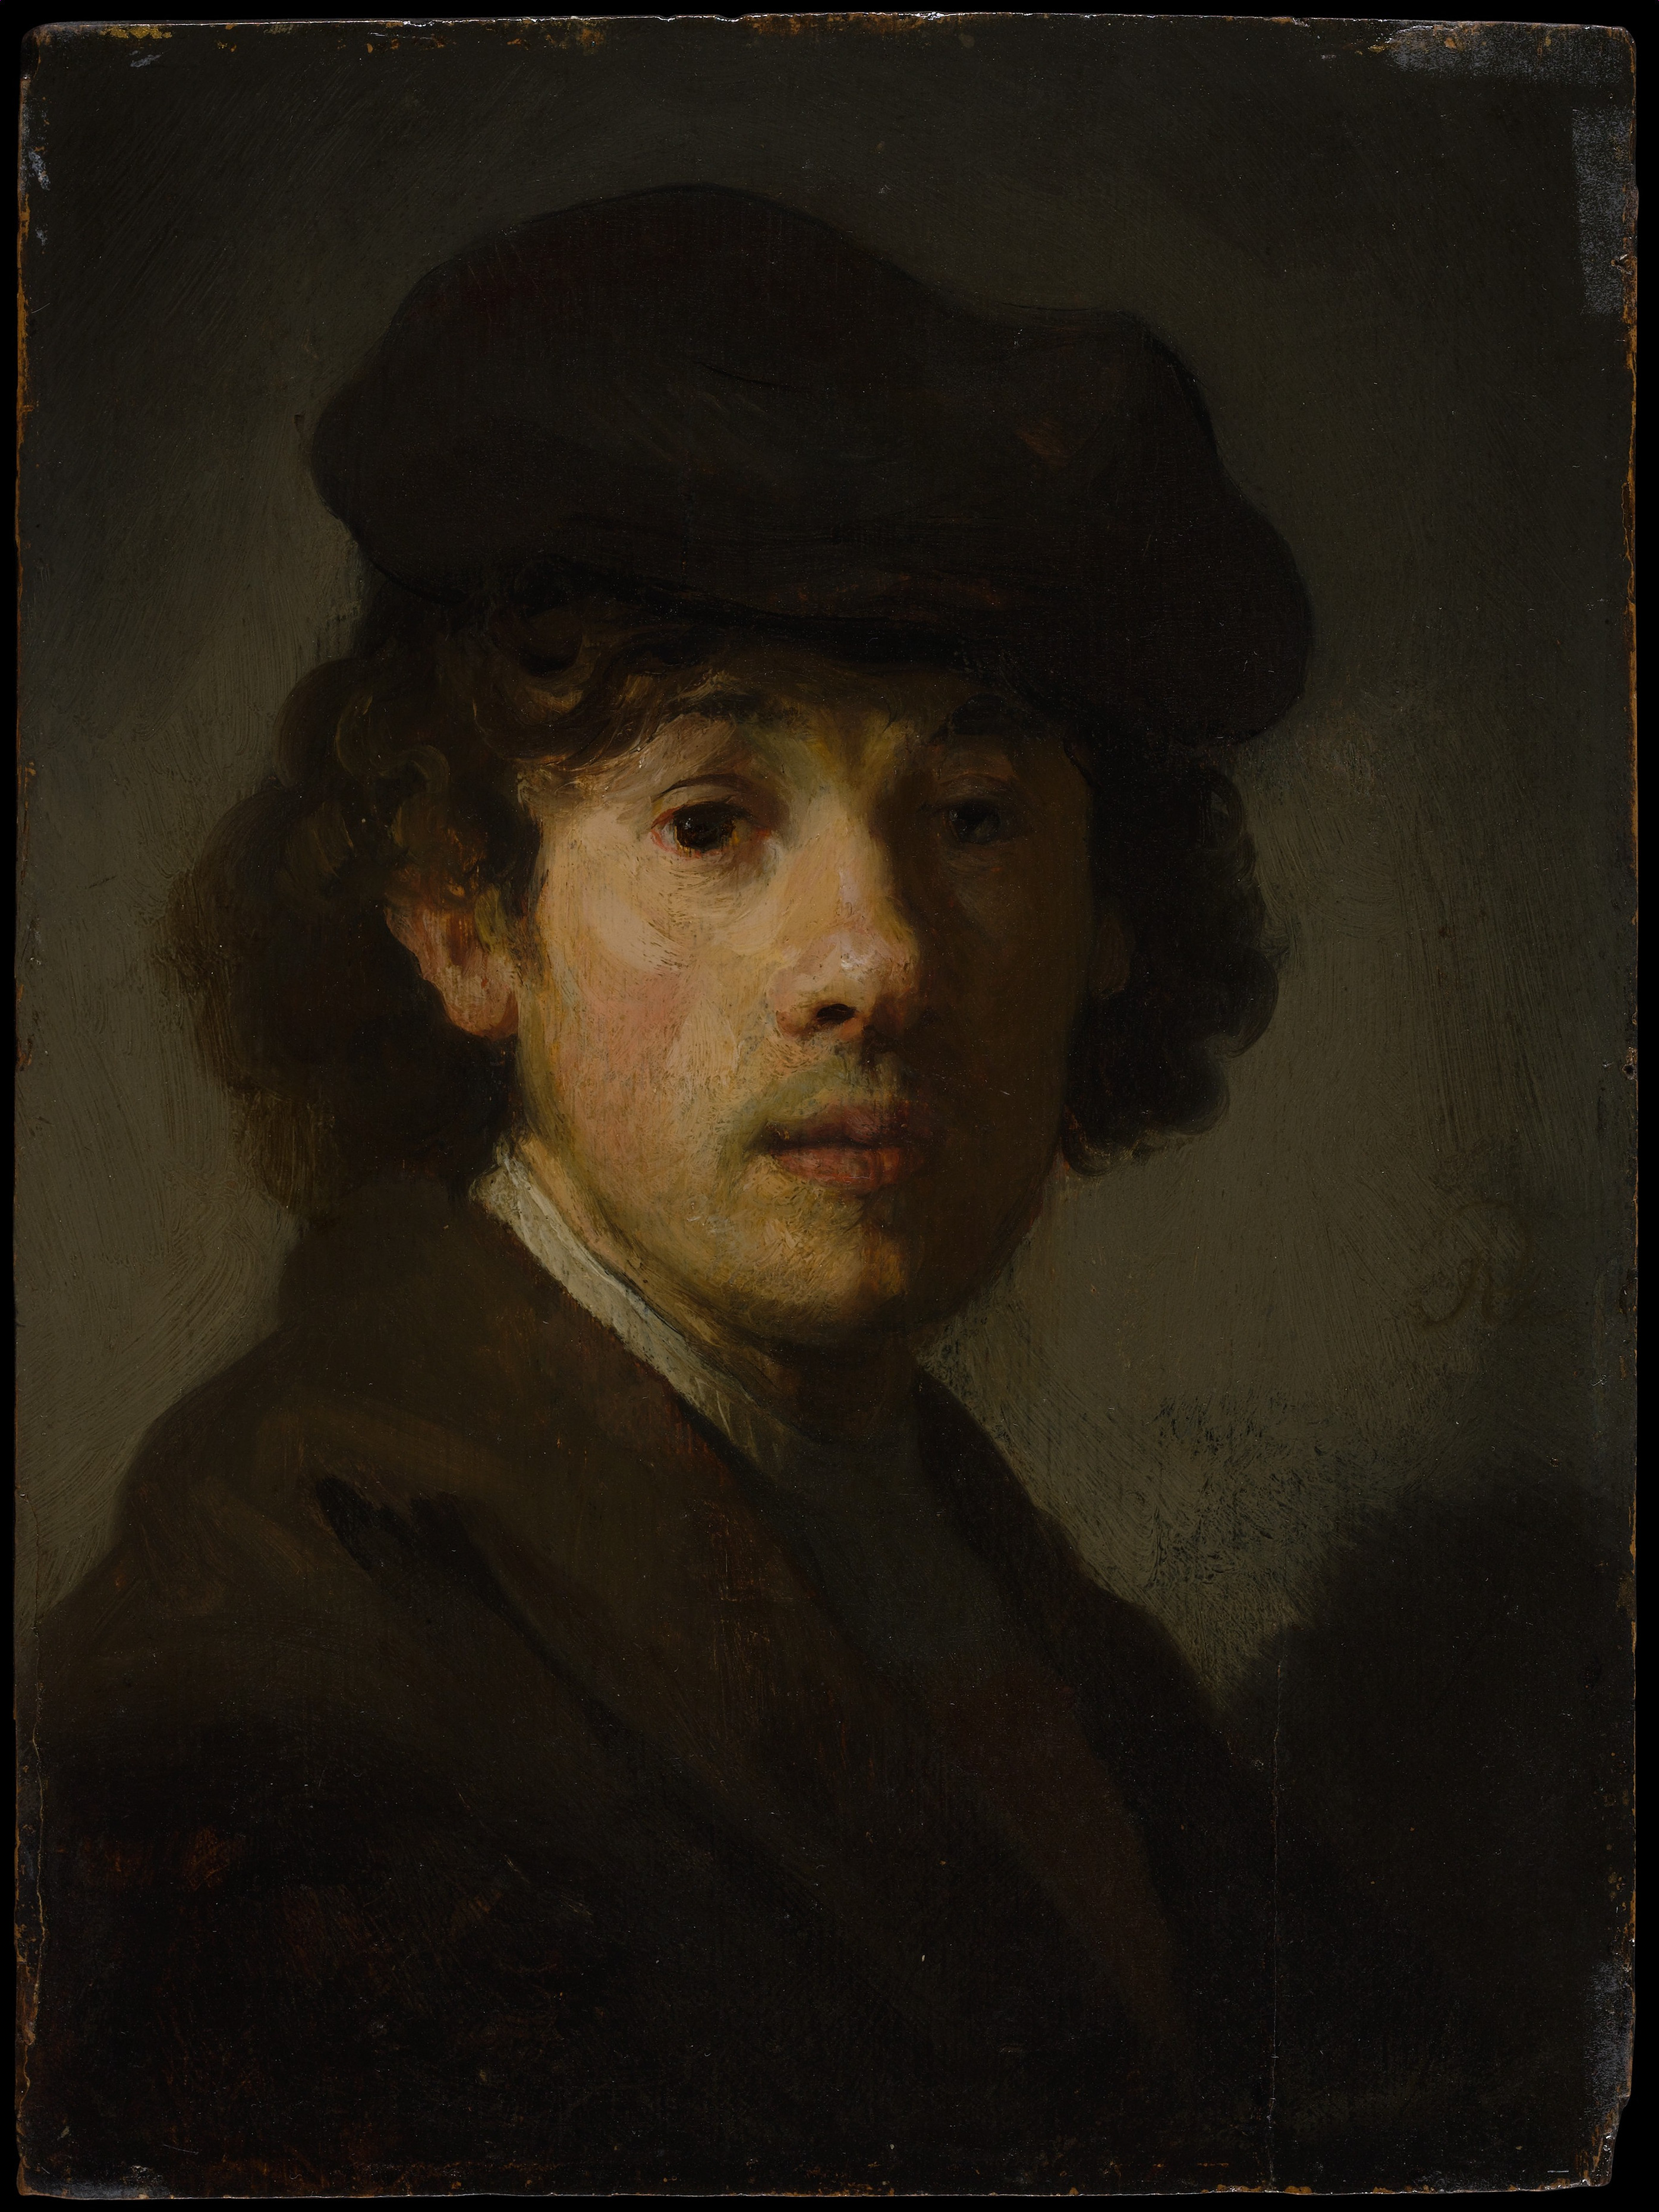 Rembrandt_as_a_young_man,_portrait_(New_York)1630-35.jpg